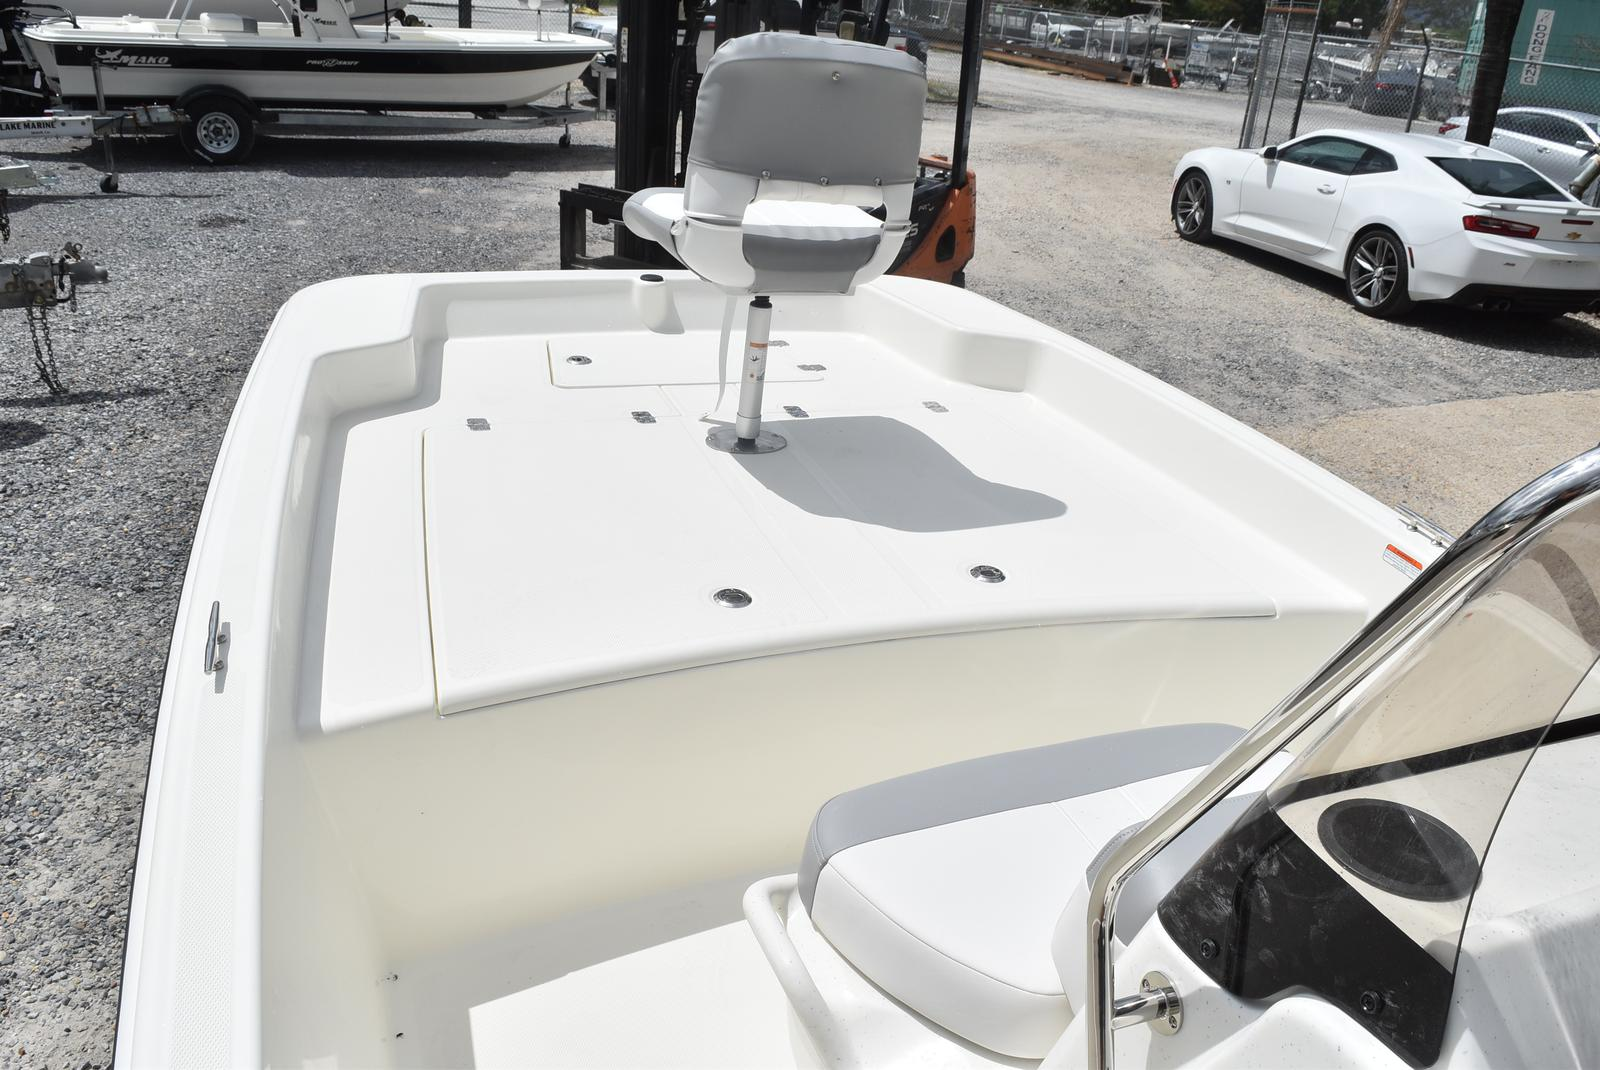 2020 Mako boat for sale, model of the boat is Pro Skiff 17, 75 ELPT & Image # 398 of 702